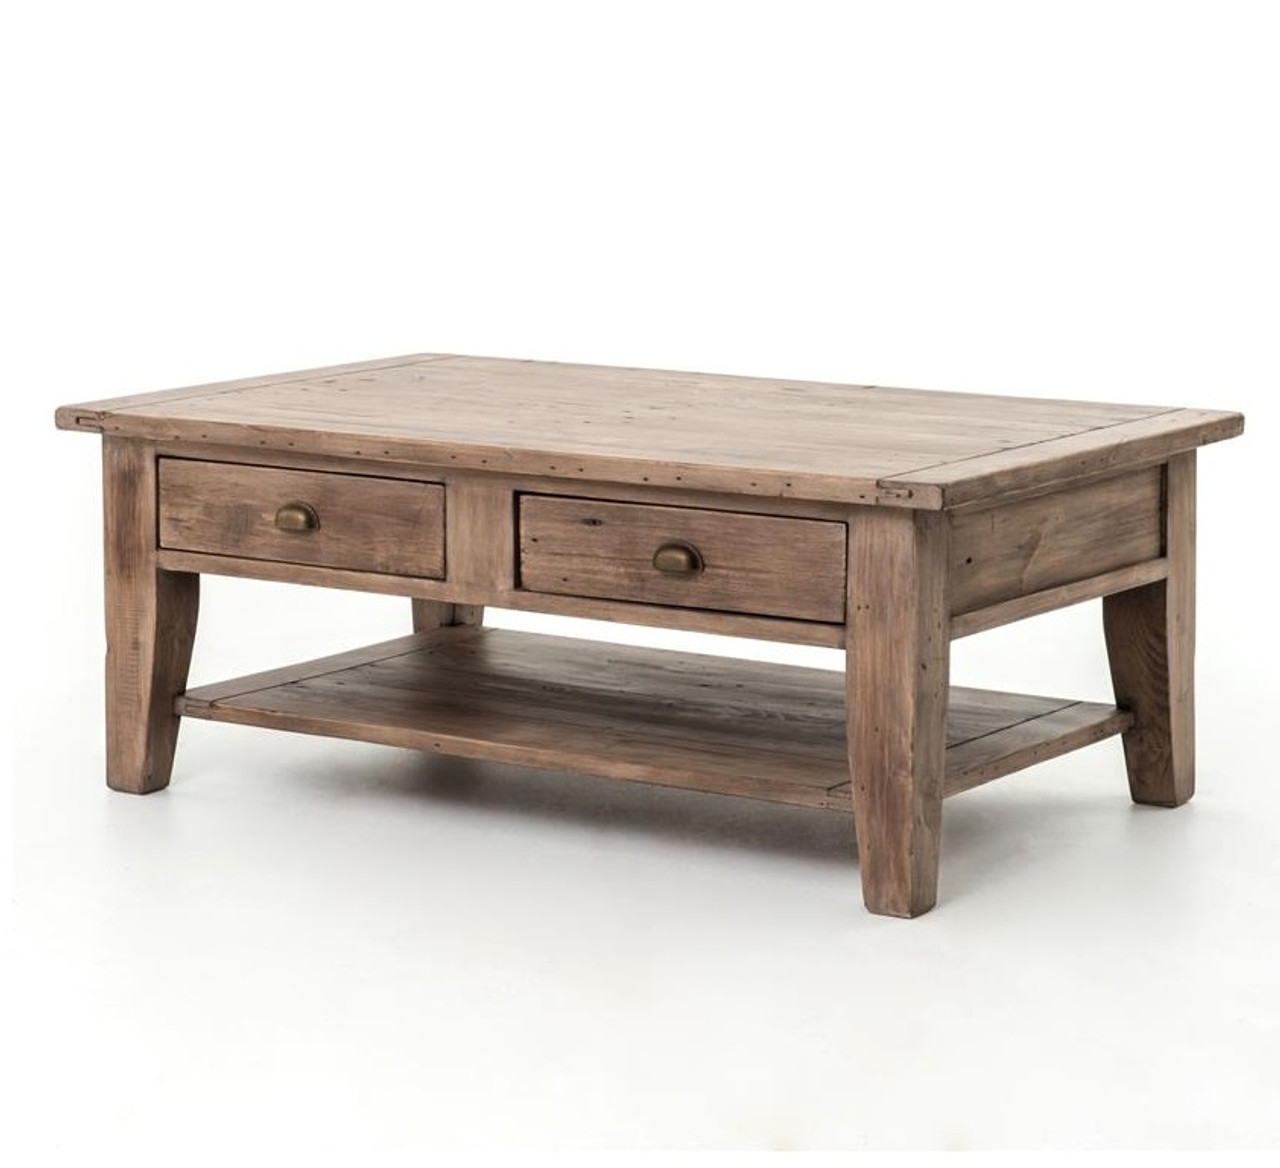 Coastal Solid Wood Coffee Table with 2 Drawers  sc 1 st  Zin Home & Coastal Solid Wood Rustic Coffee Table with Drawers | Zin Home